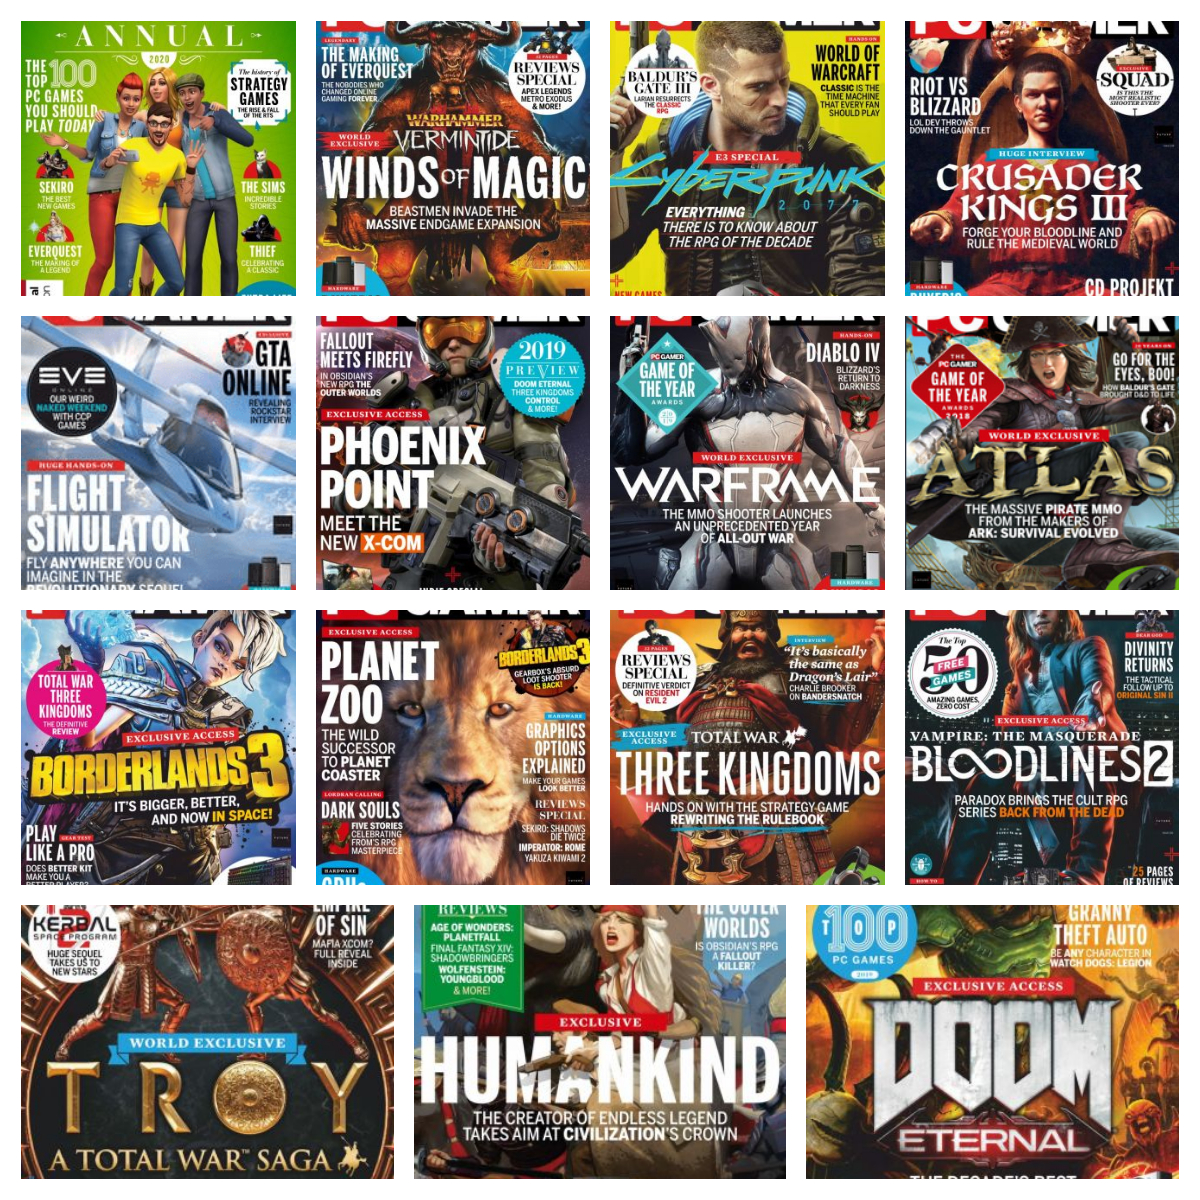 PC Gamer UK – 2019 Full Year Issues Collection